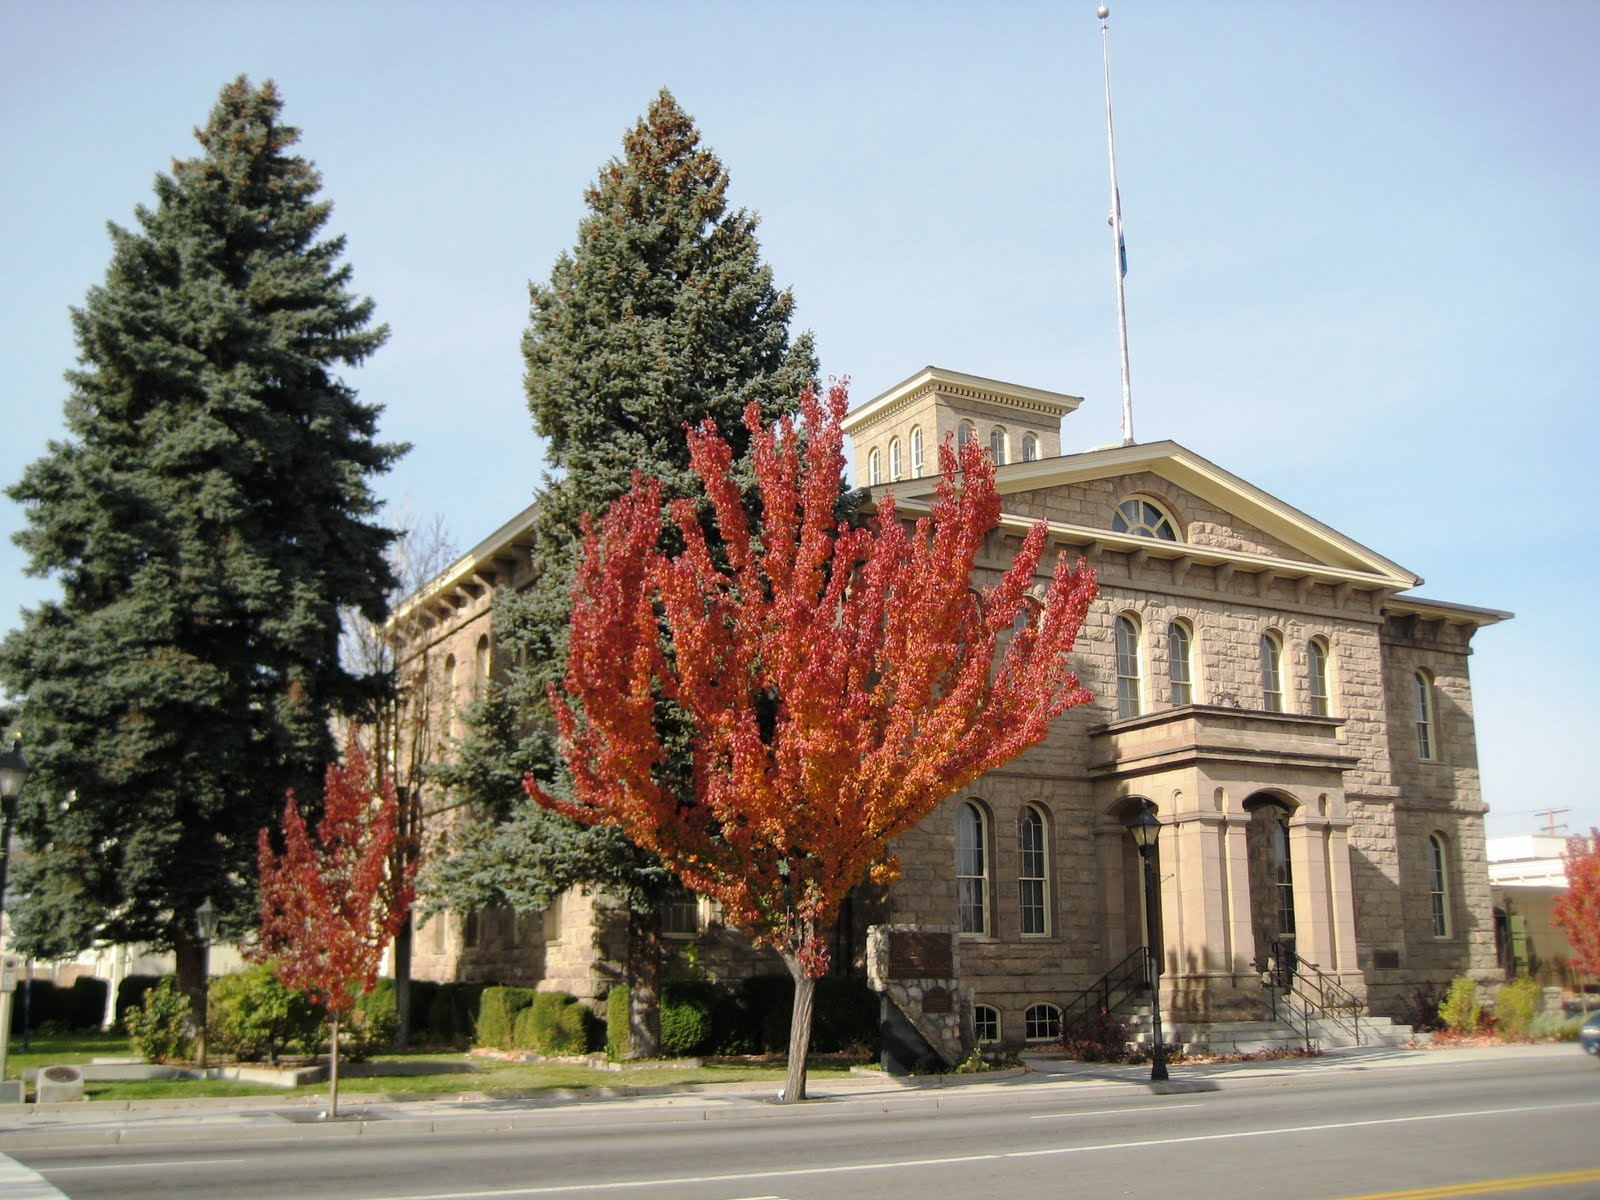 Carson City (NV) United States  City pictures : Historic United States Mint Facilities | Carson City, NV | The ...